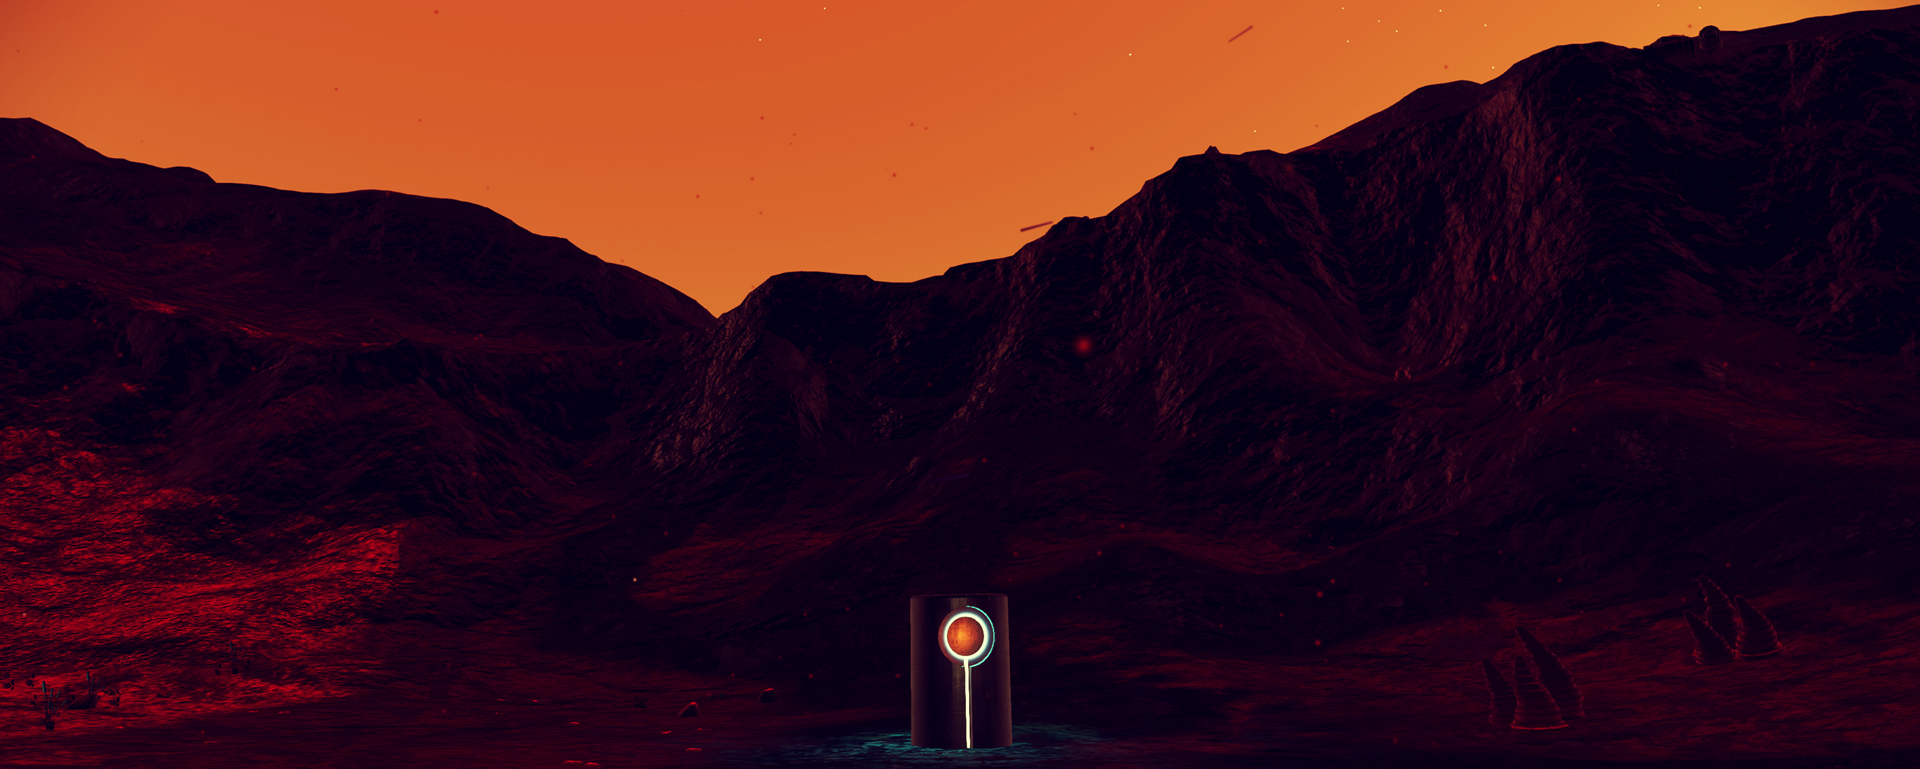 nms_2016_08_14_15_30_hdutw.png